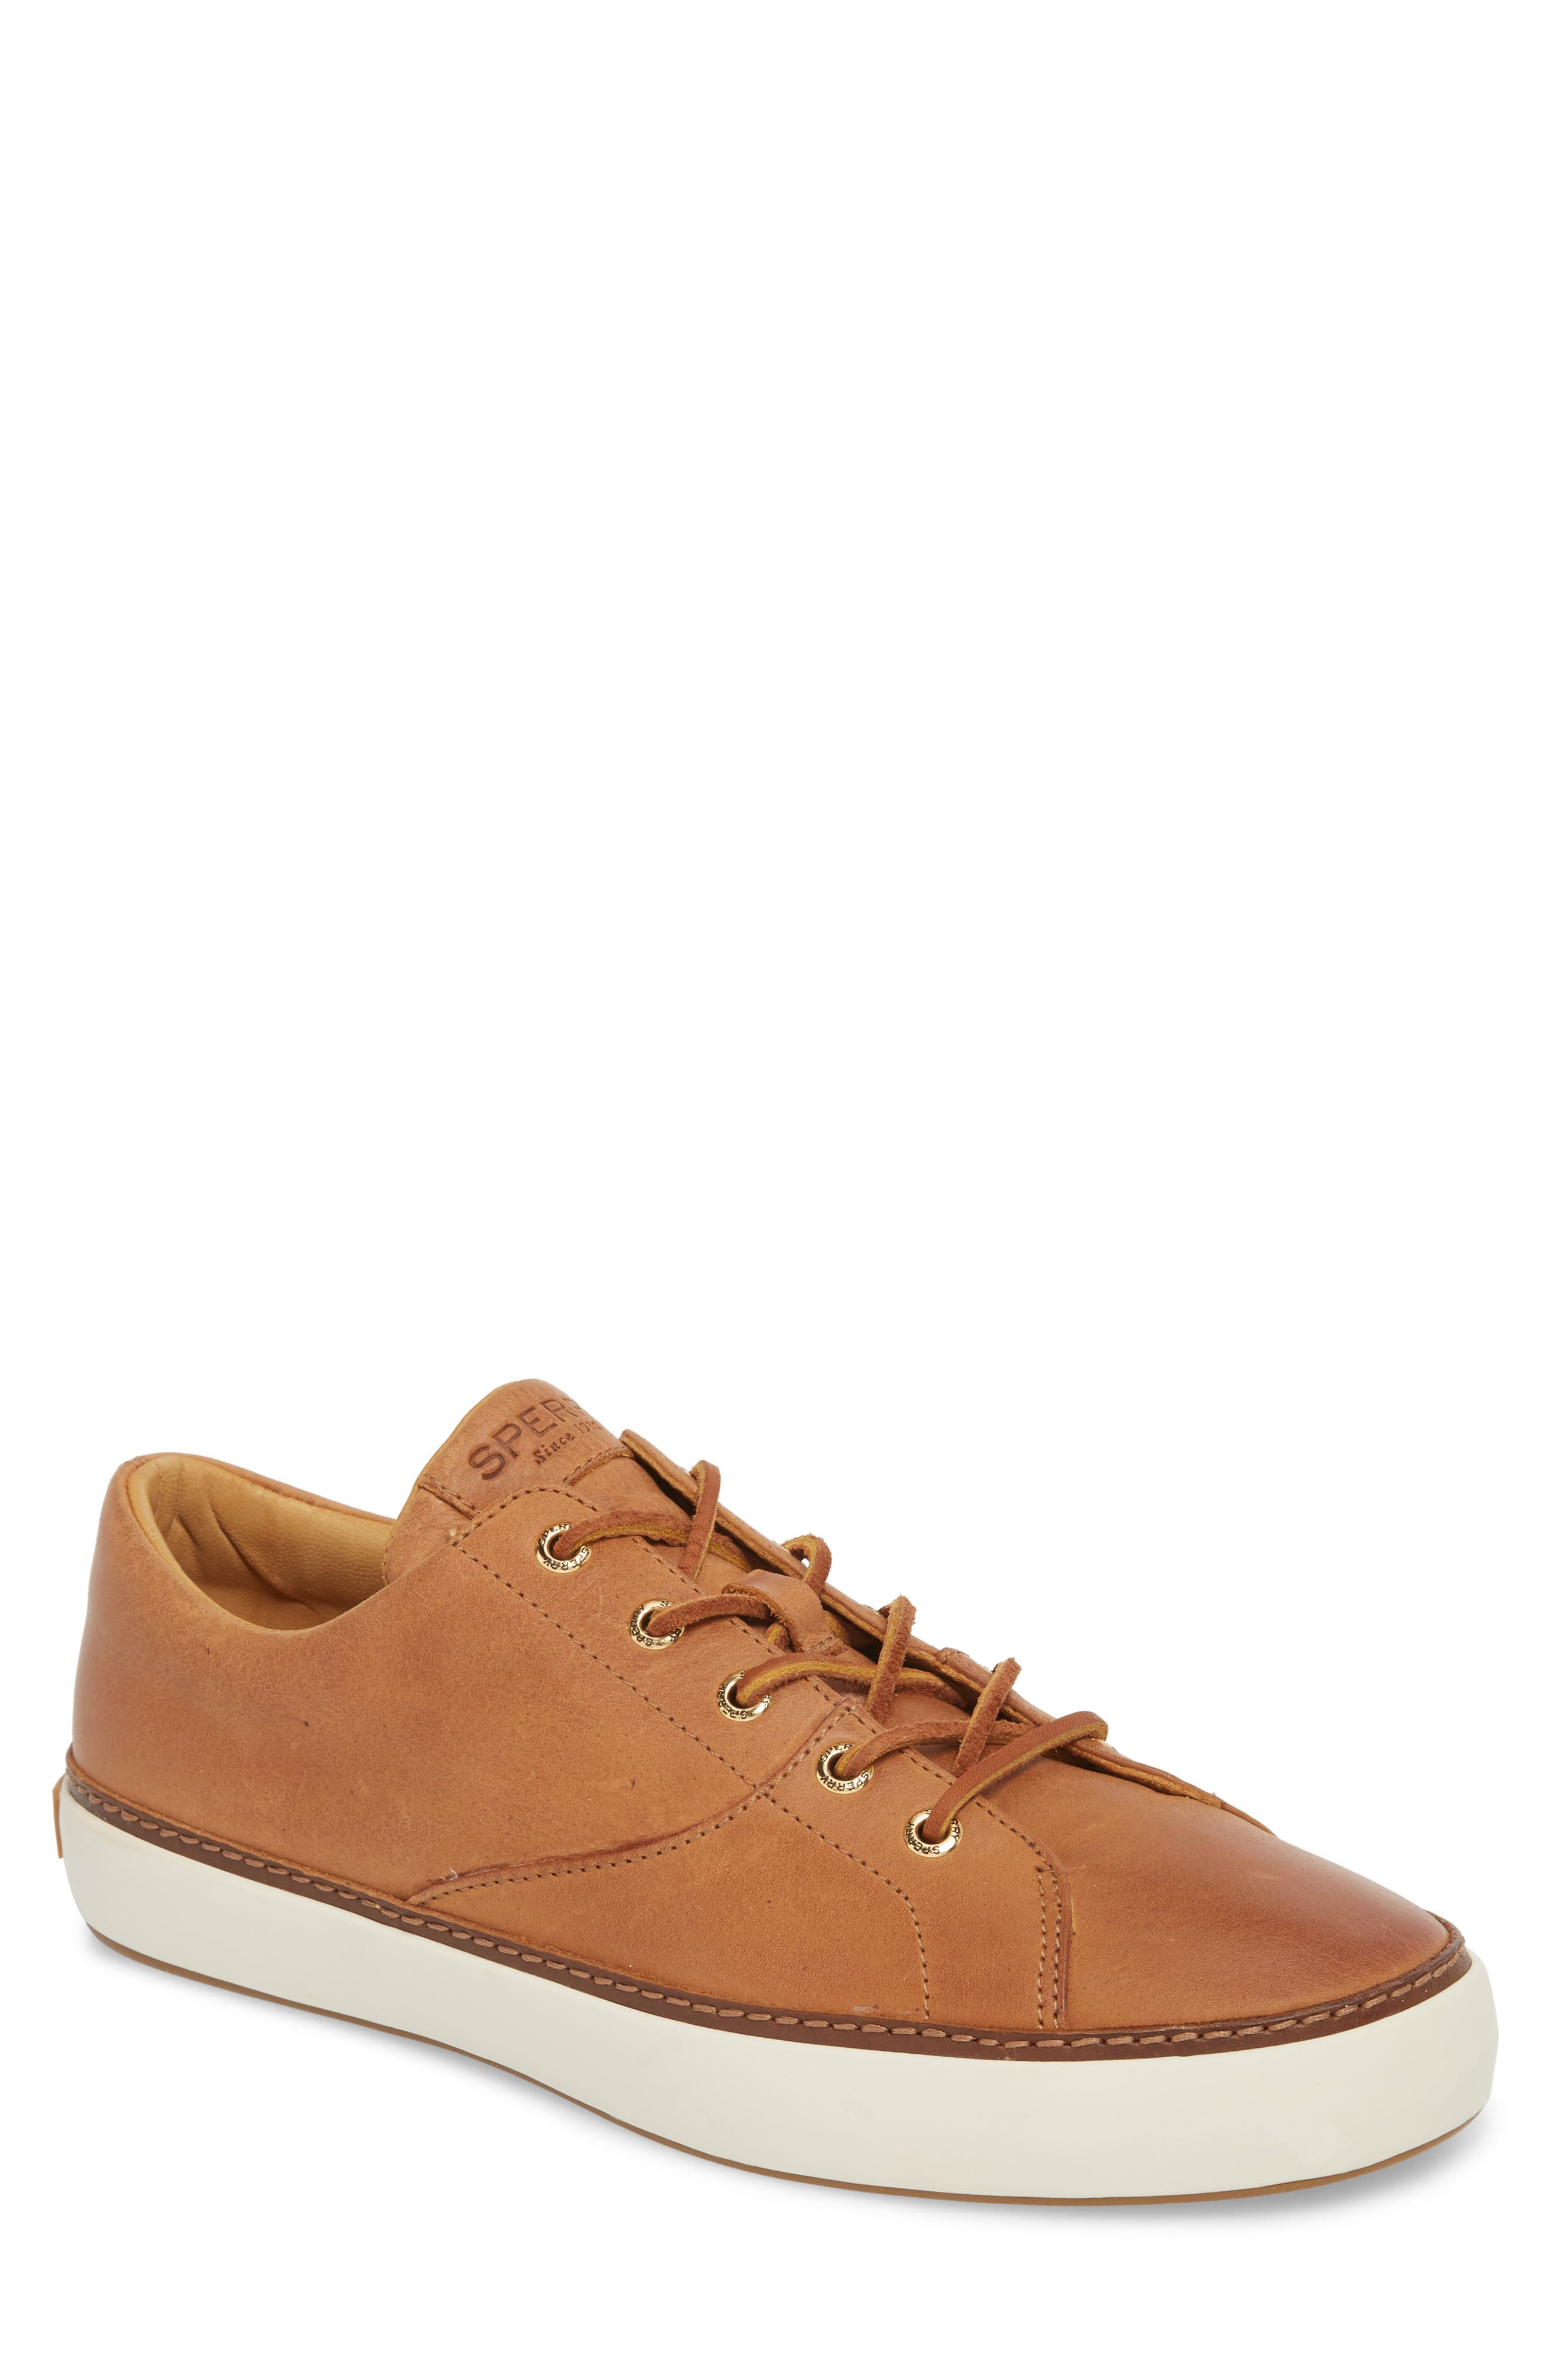 Sperry Gold Cup Haven Sneaker, Brown